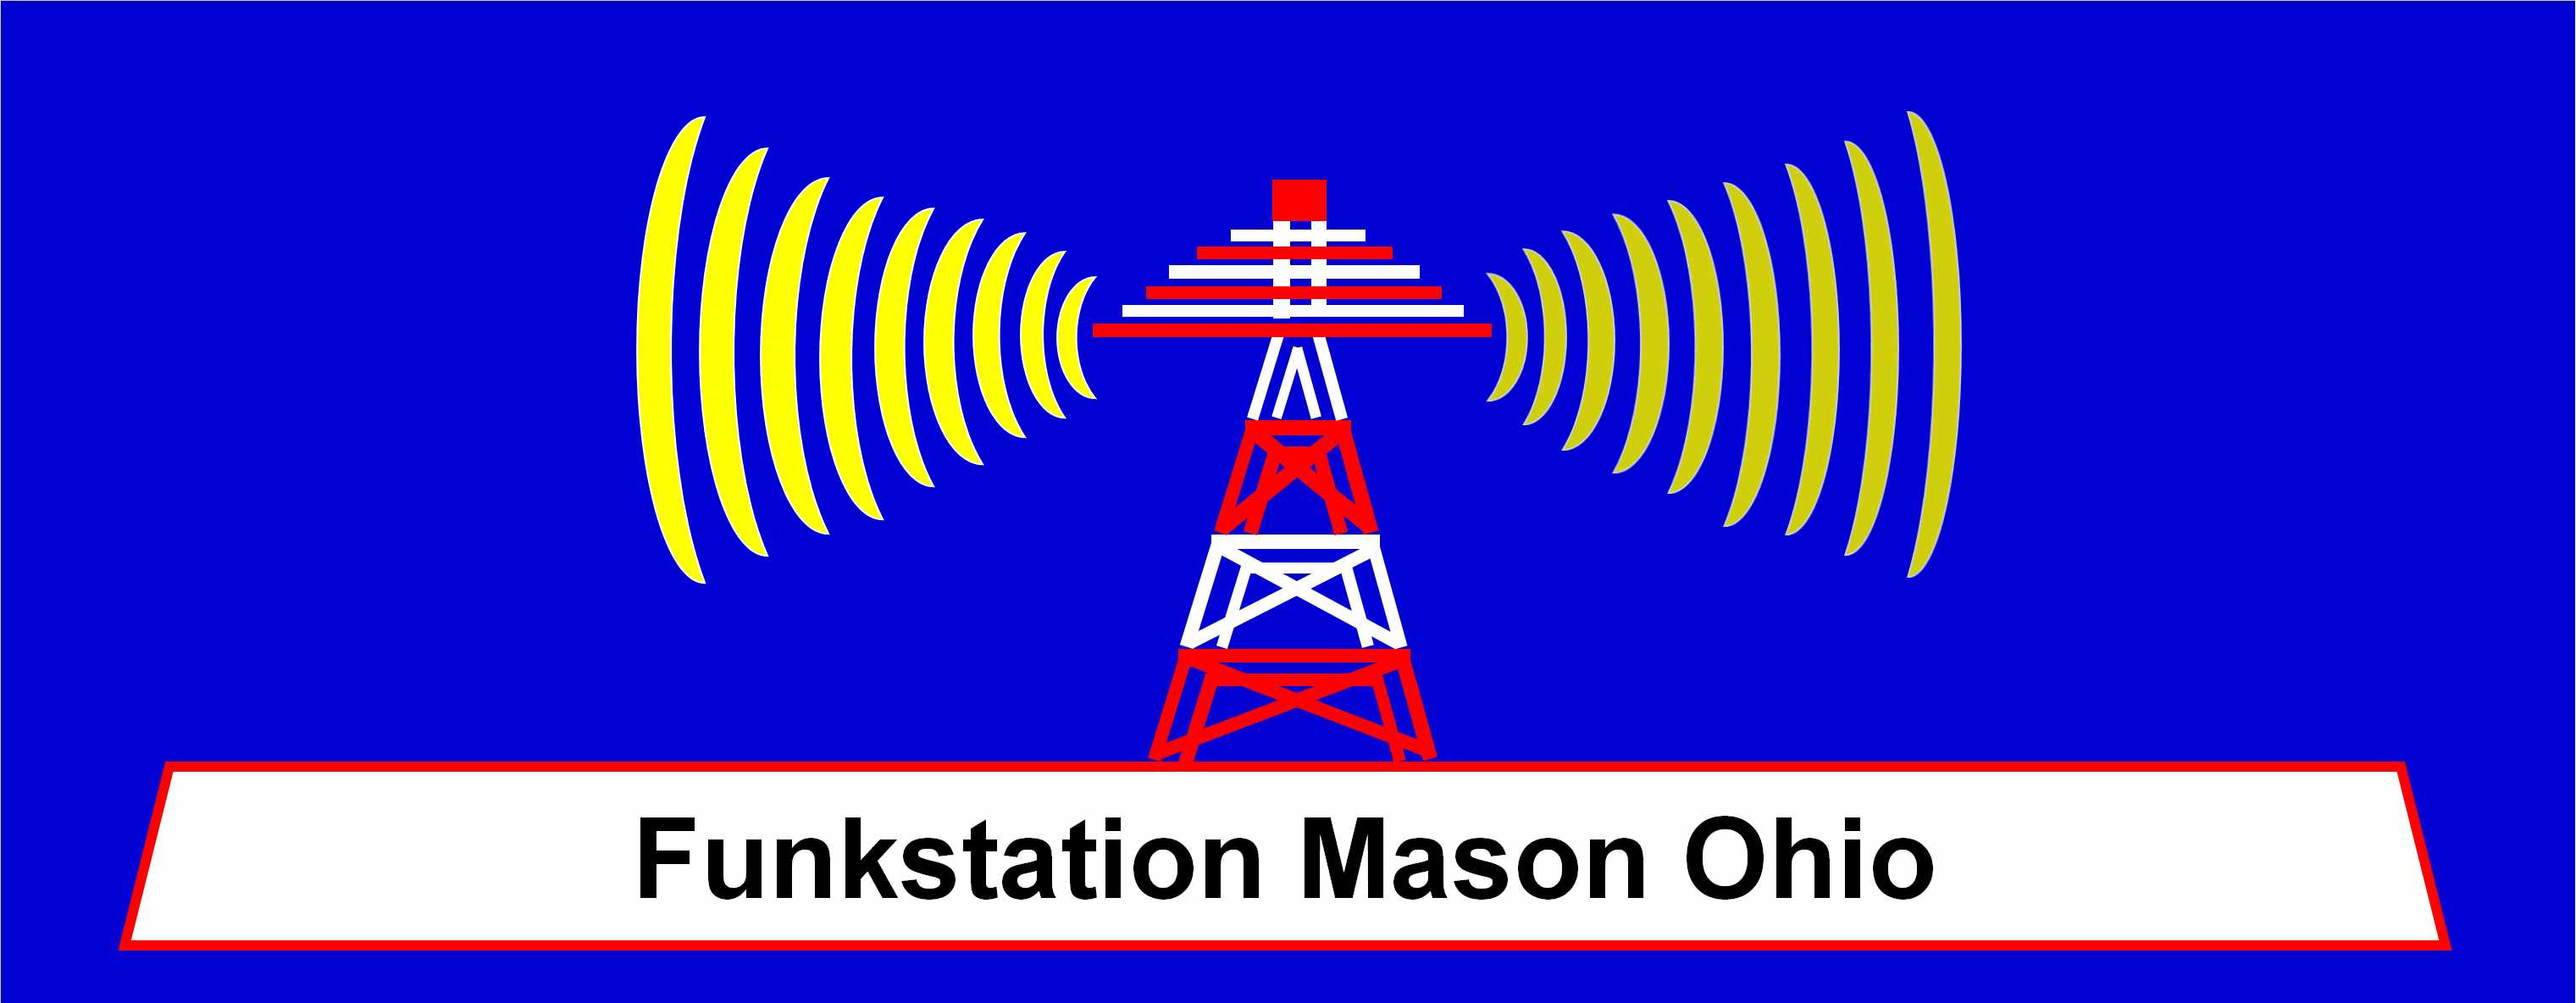 Funkstation Mason Ohio